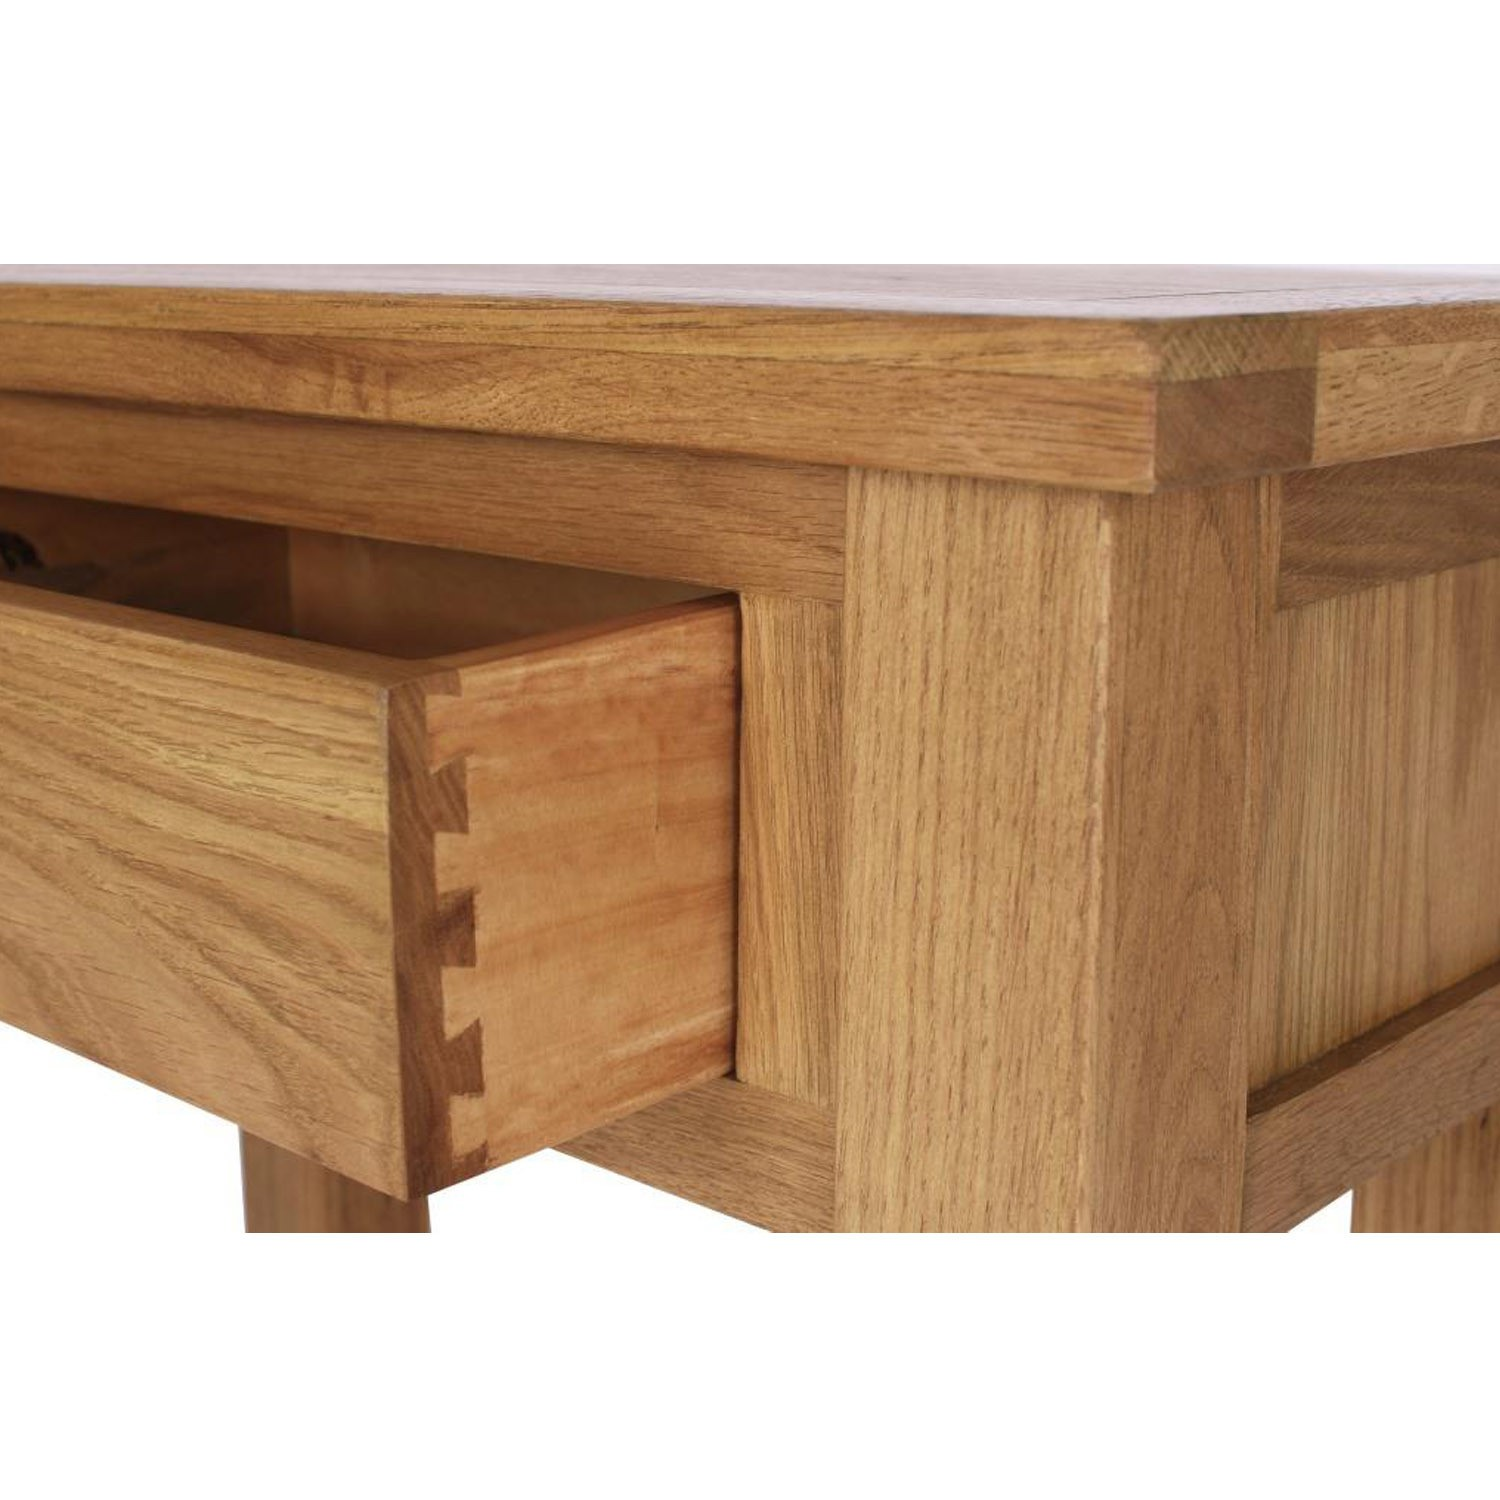 Solid oak narrow console table 1 drawer lower shelf for Narrow console table with shelves